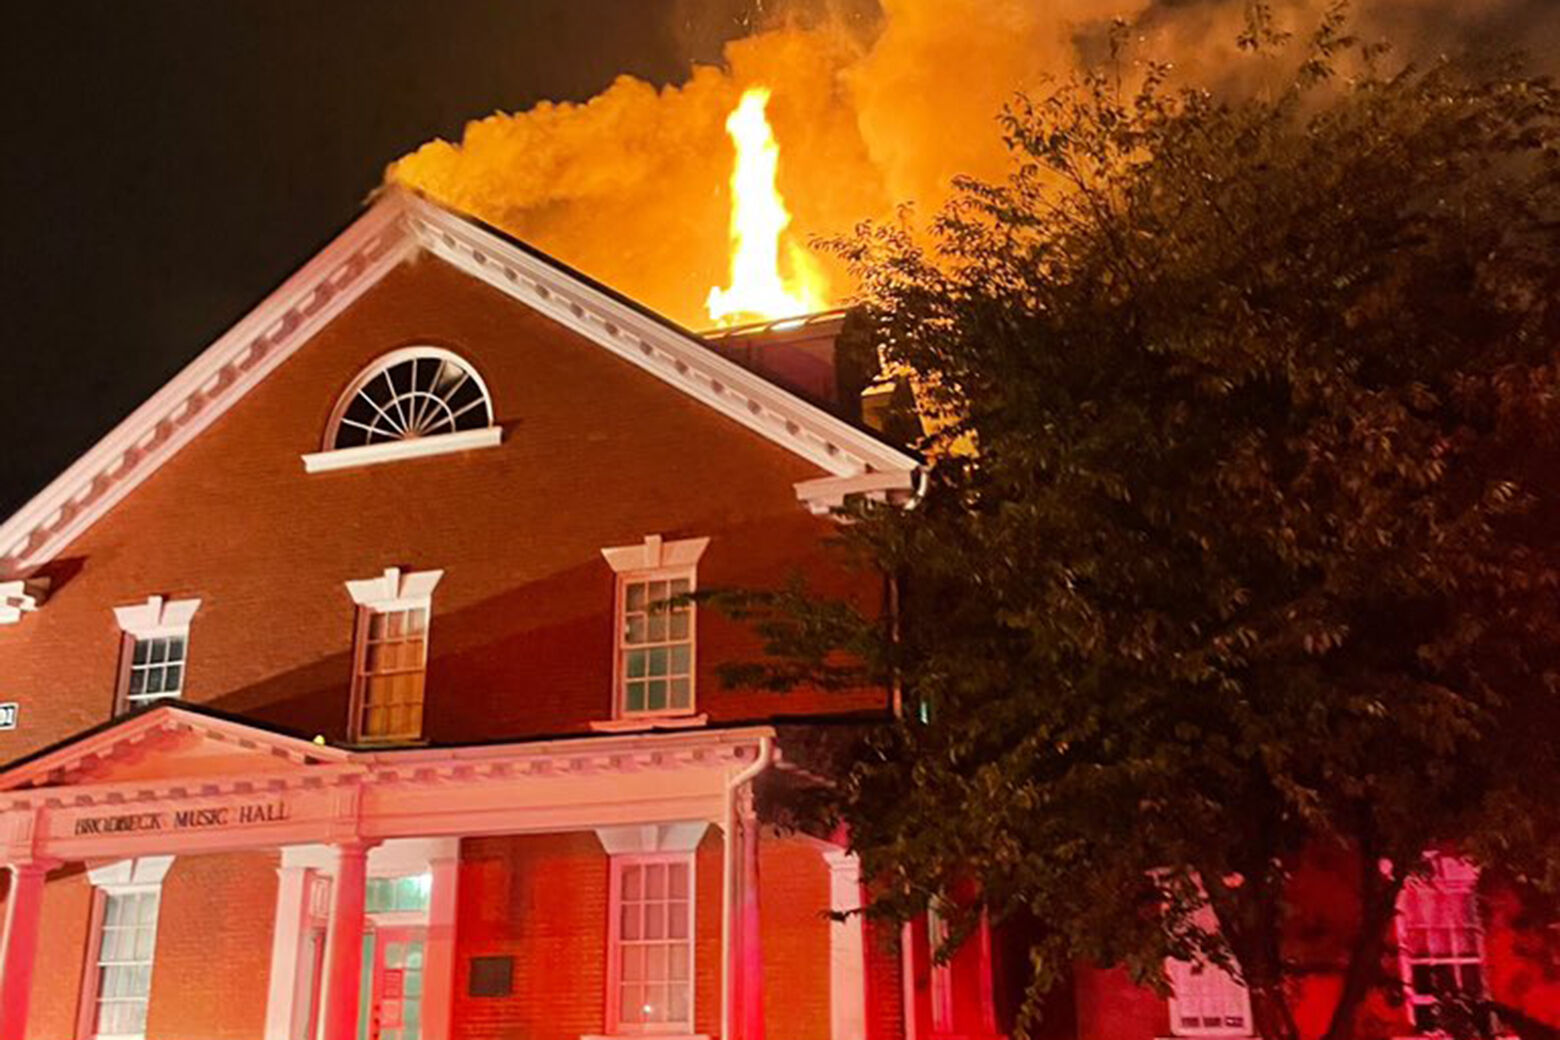 Hood College fire caused by lightning strike